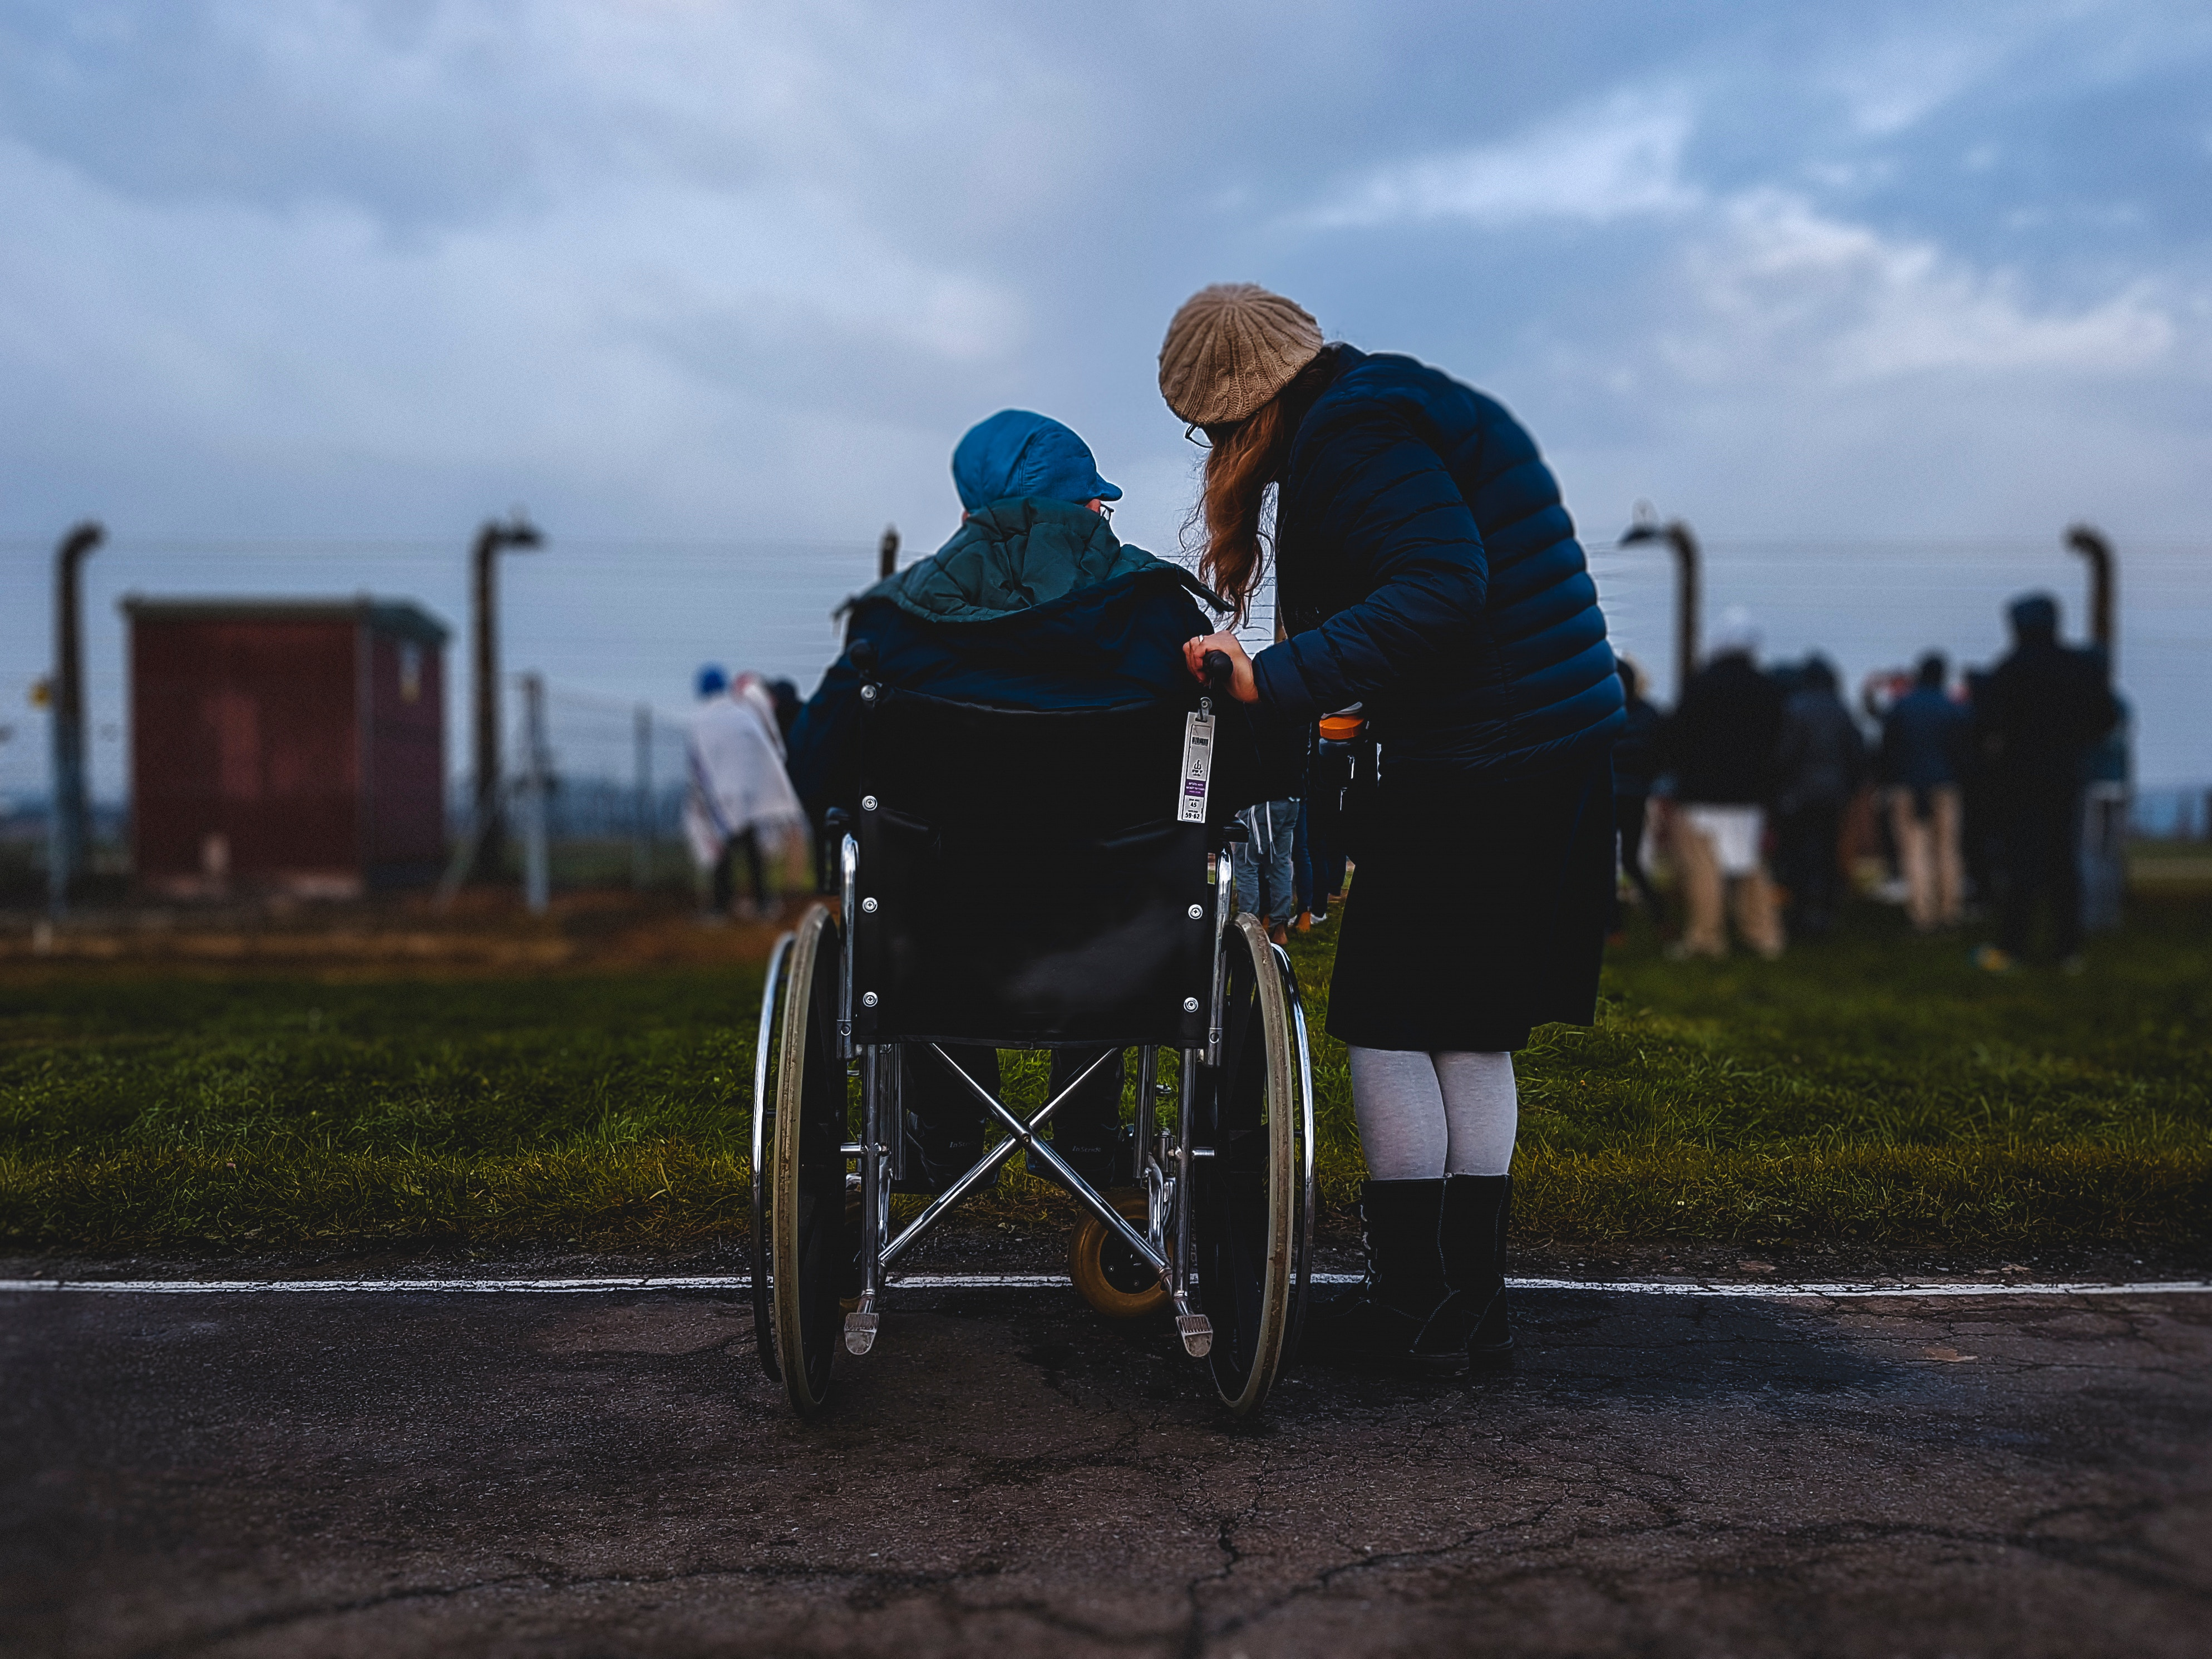 A picture of a woman holding another person who is seated in a wheel chair